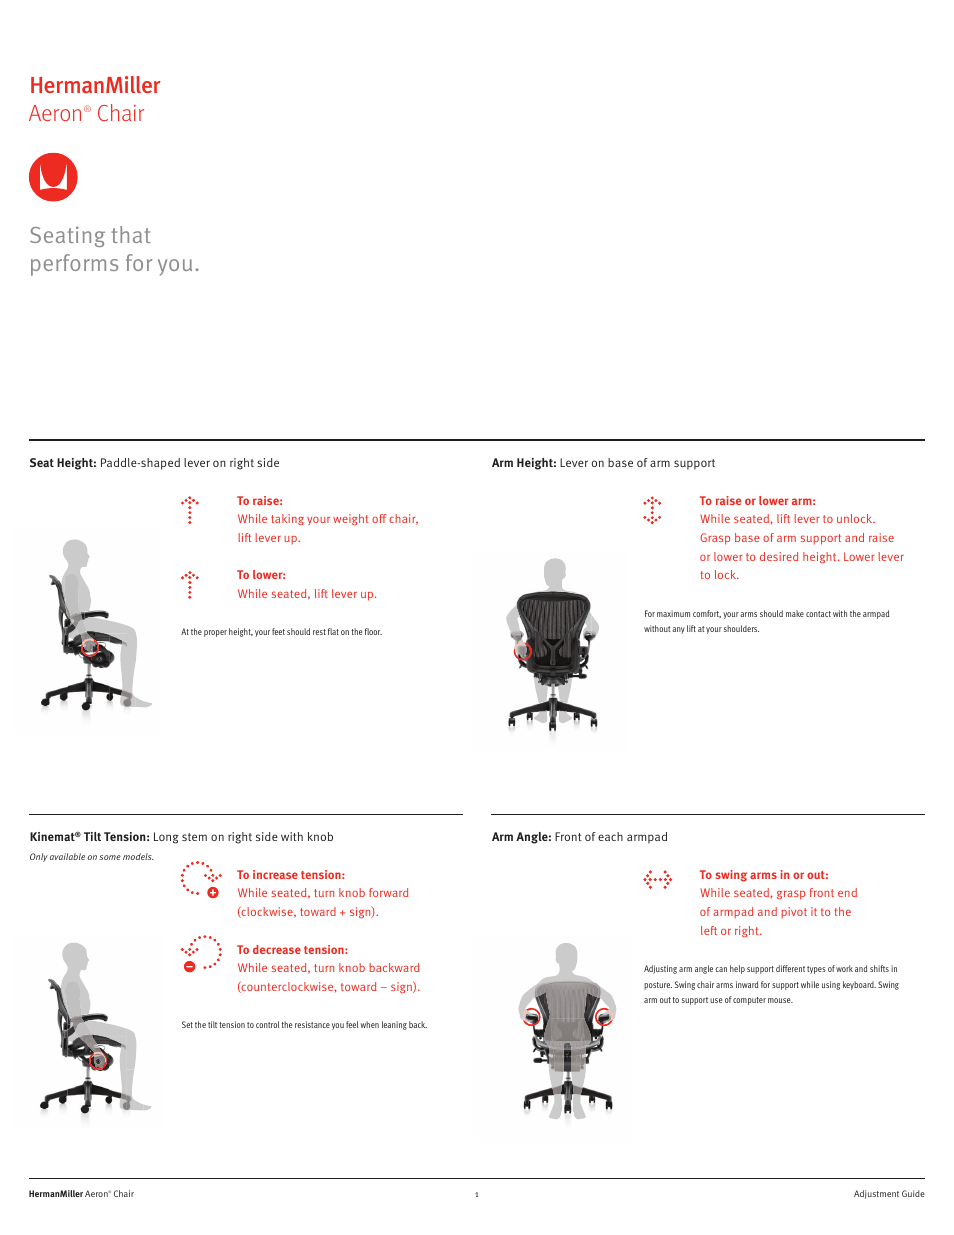 Enjoyable Herman Miller Aeron Chairs User Adjustments User Manual Ocoug Best Dining Table And Chair Ideas Images Ocougorg